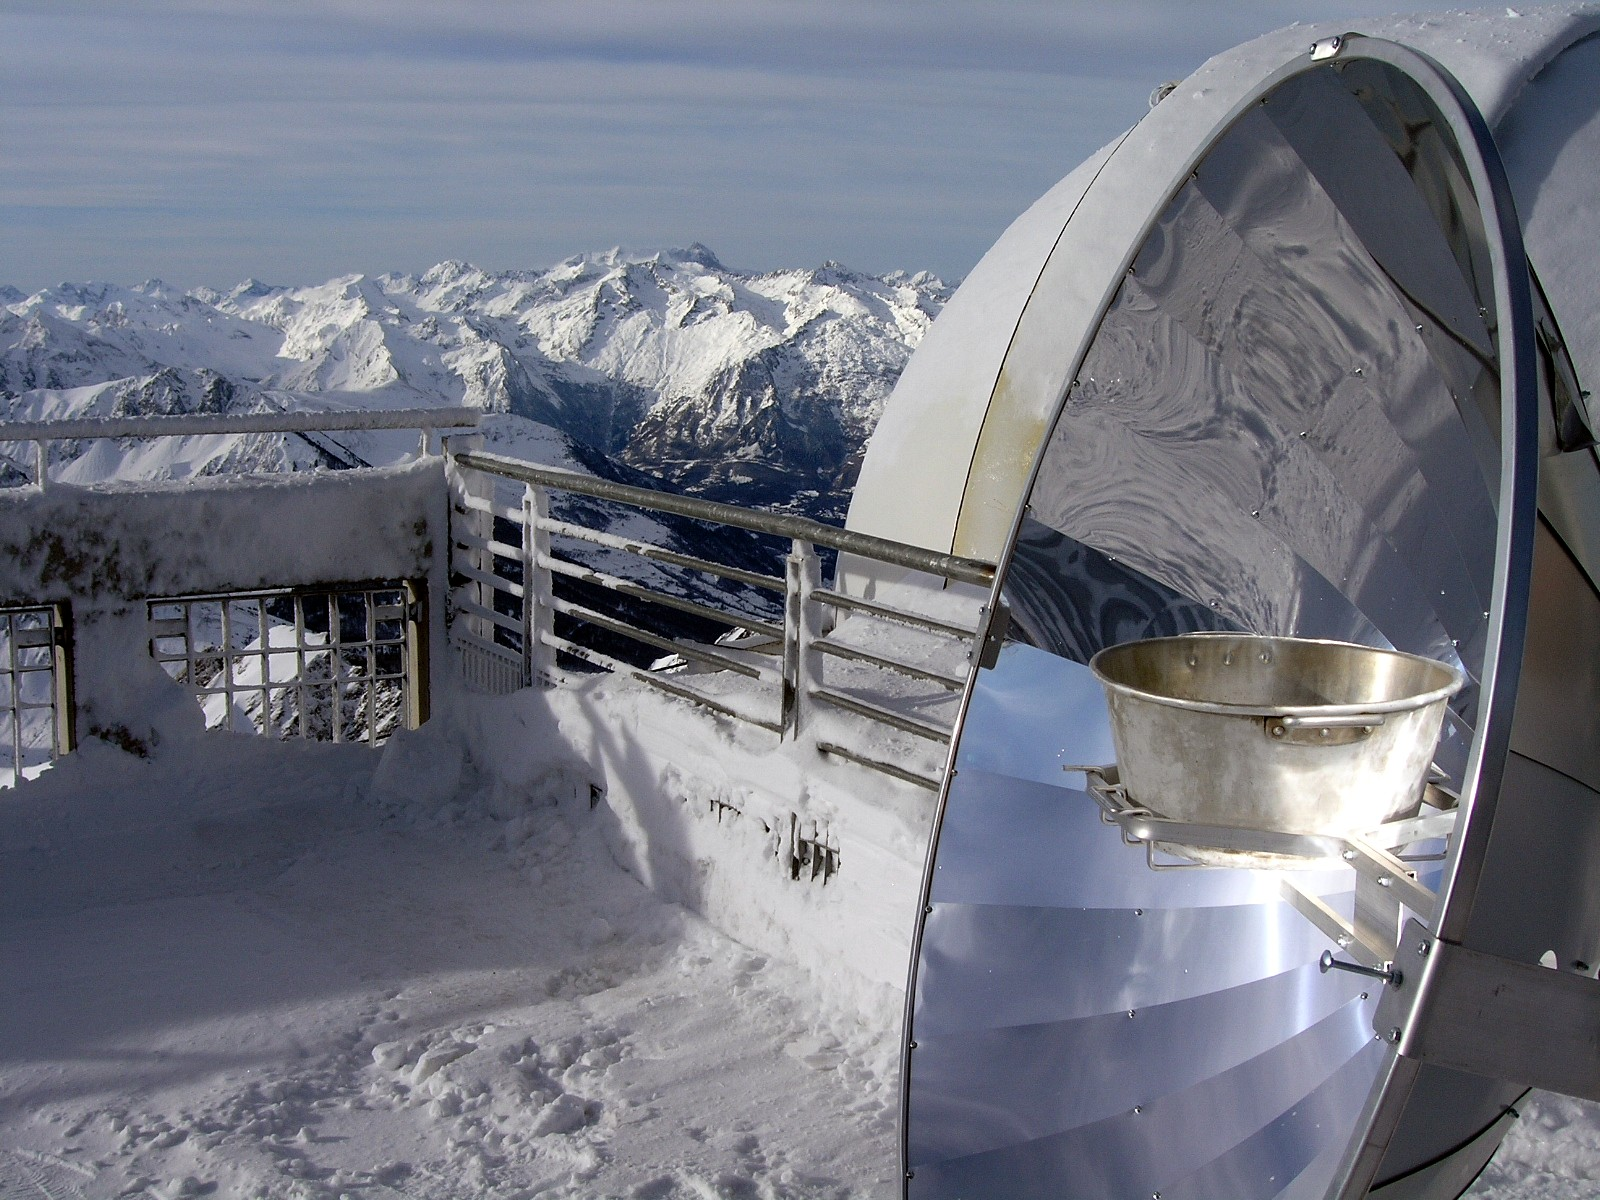 http://images.wikia.com/solarcooking/images/4/48/Solarkocher_in_Frankreich_Alpen.JPG